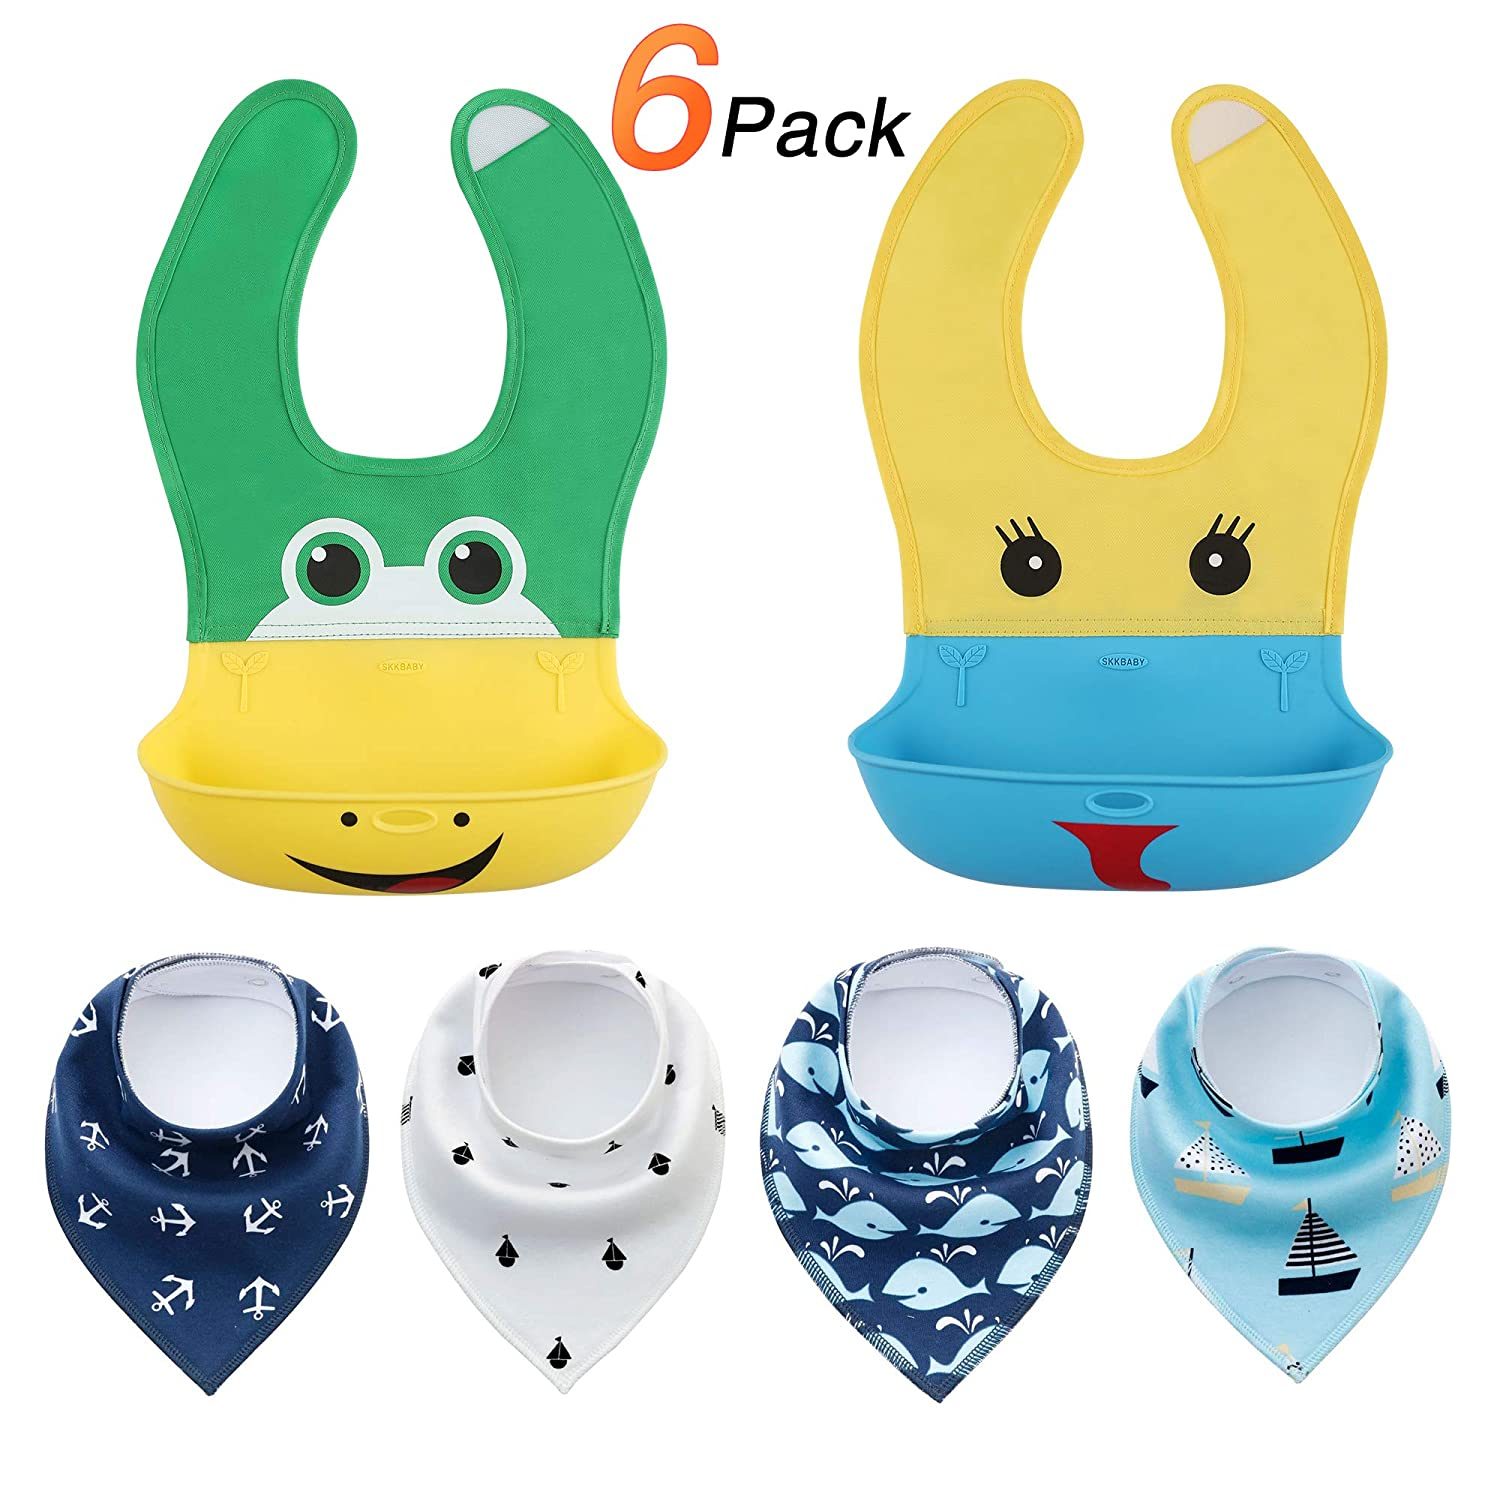 Waterproof Silicone Bibs for Babies & Toddlers (2 PCS)- Quick and Easy to Clean, Unisex Super Absorbent, Soft, Chic Organic Drool and Teething Bibs (4 PCS) NEXTAMZ HT-BIBS